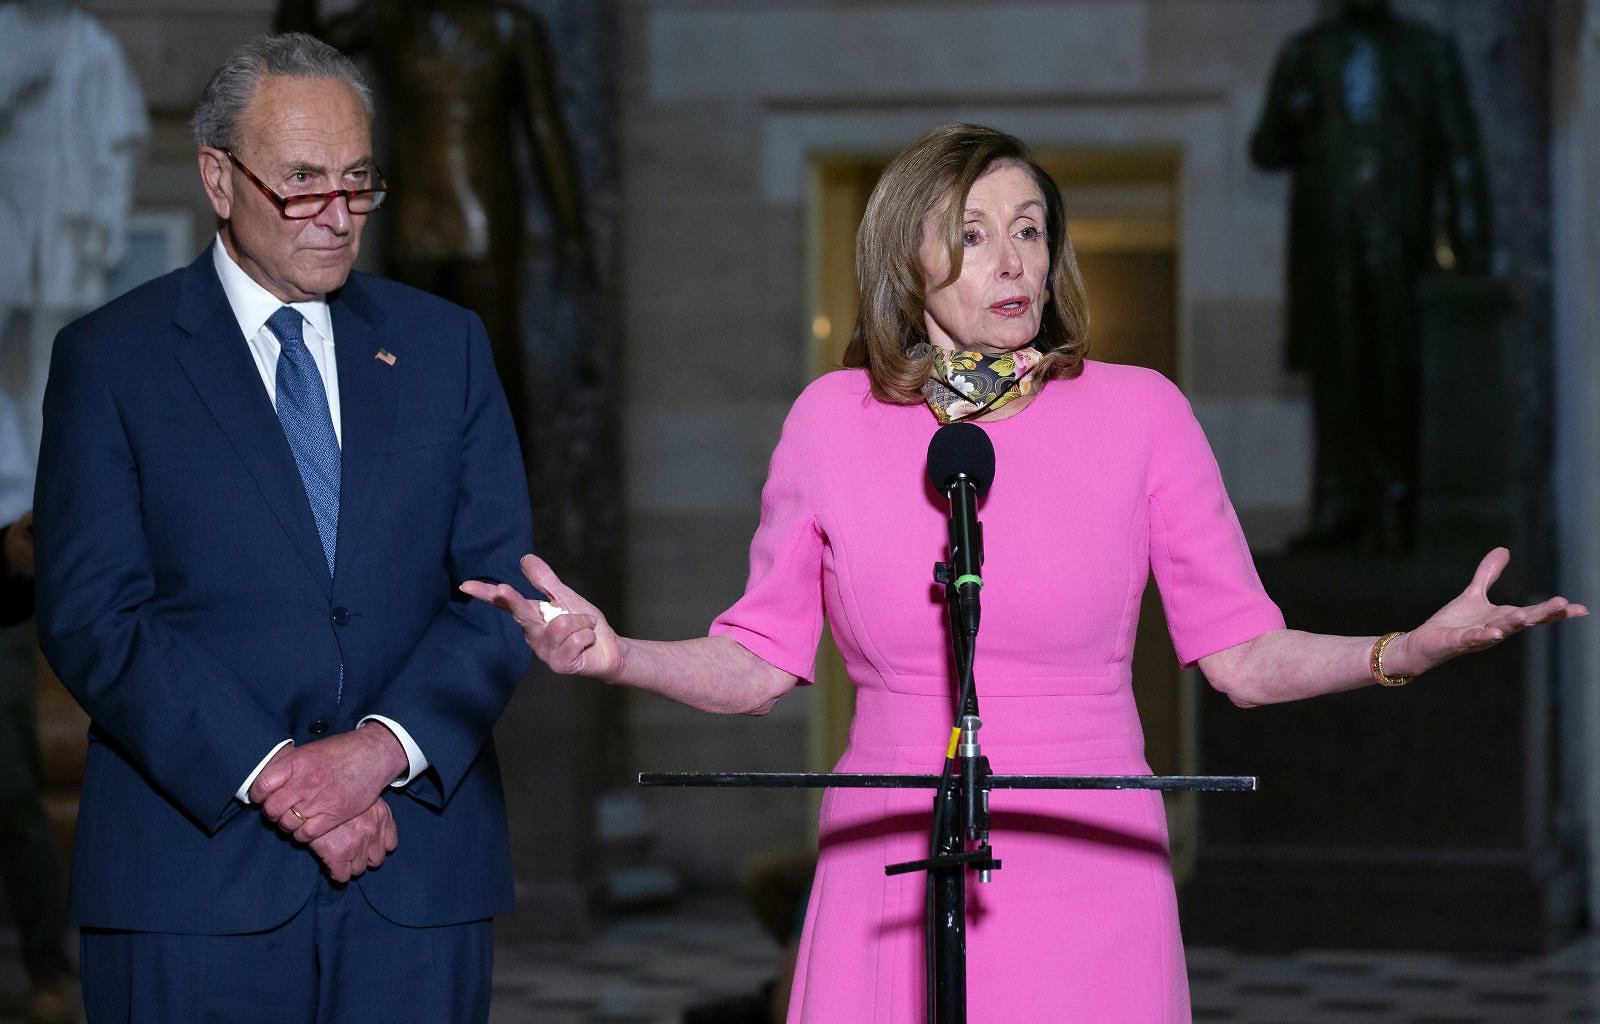 No Sign of Stimulus Deal in Sight As Pelosi Says Dems, White House Are 'miles Apart'